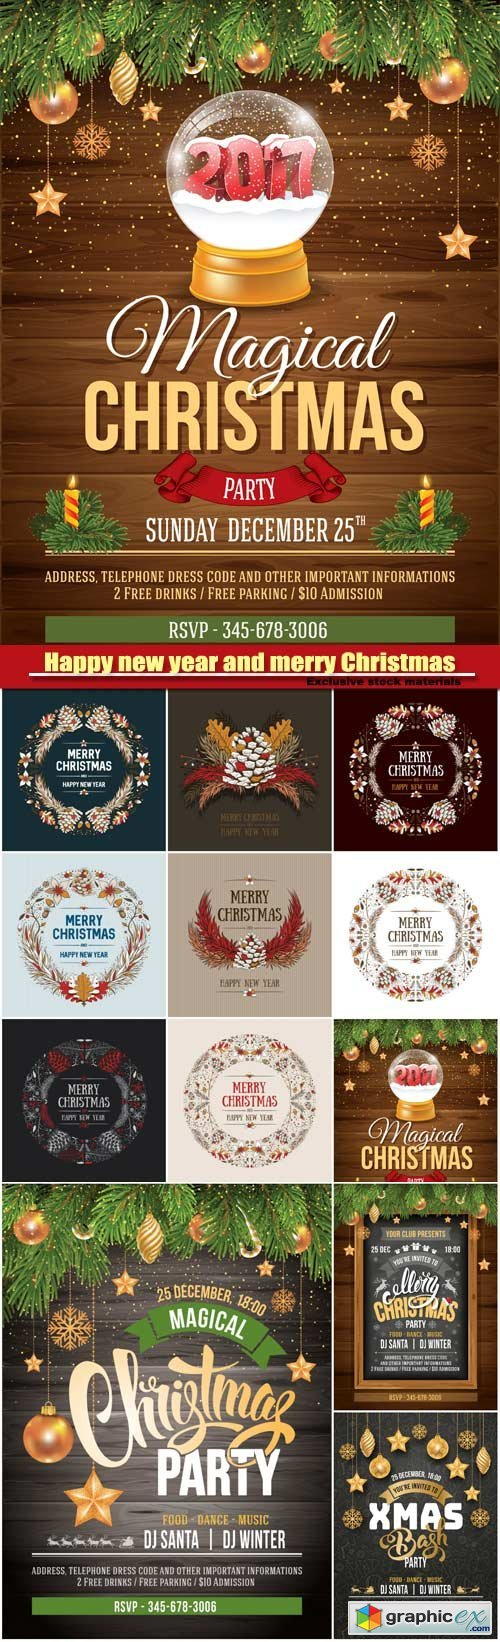 Frame Christmas design, luxury template design for Christmas party